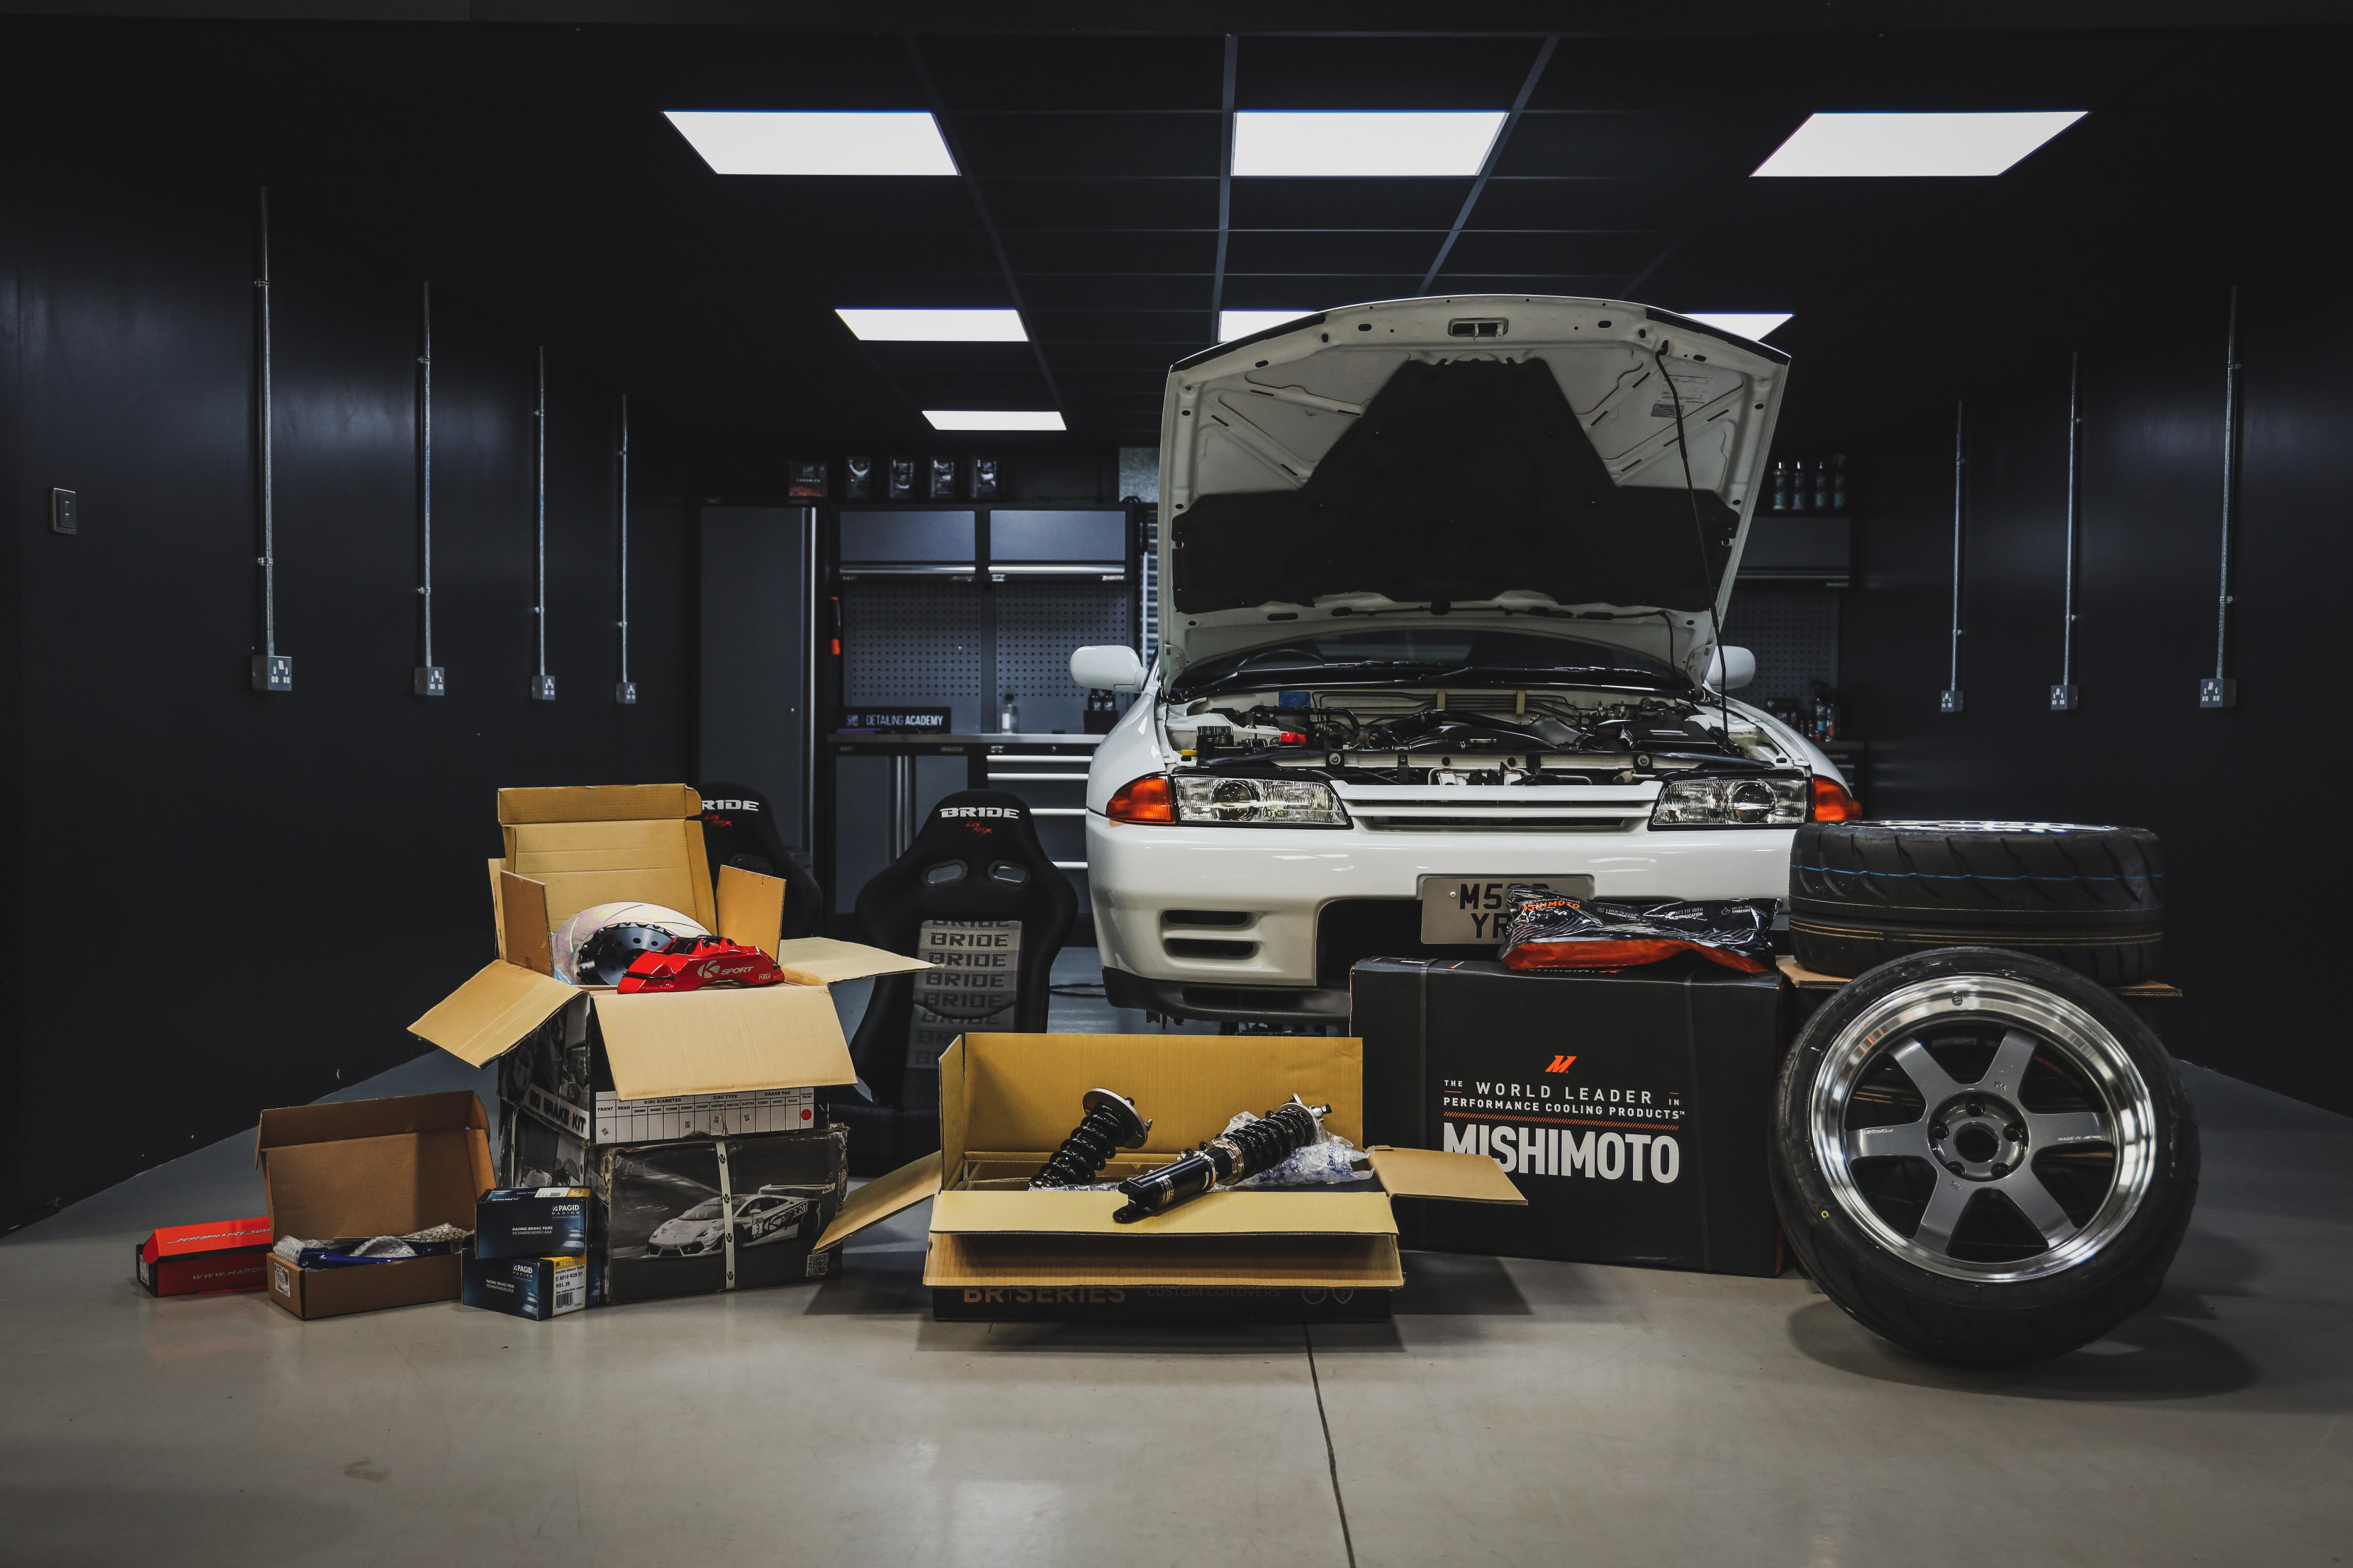 Project R32 GTR x Auto Finesse